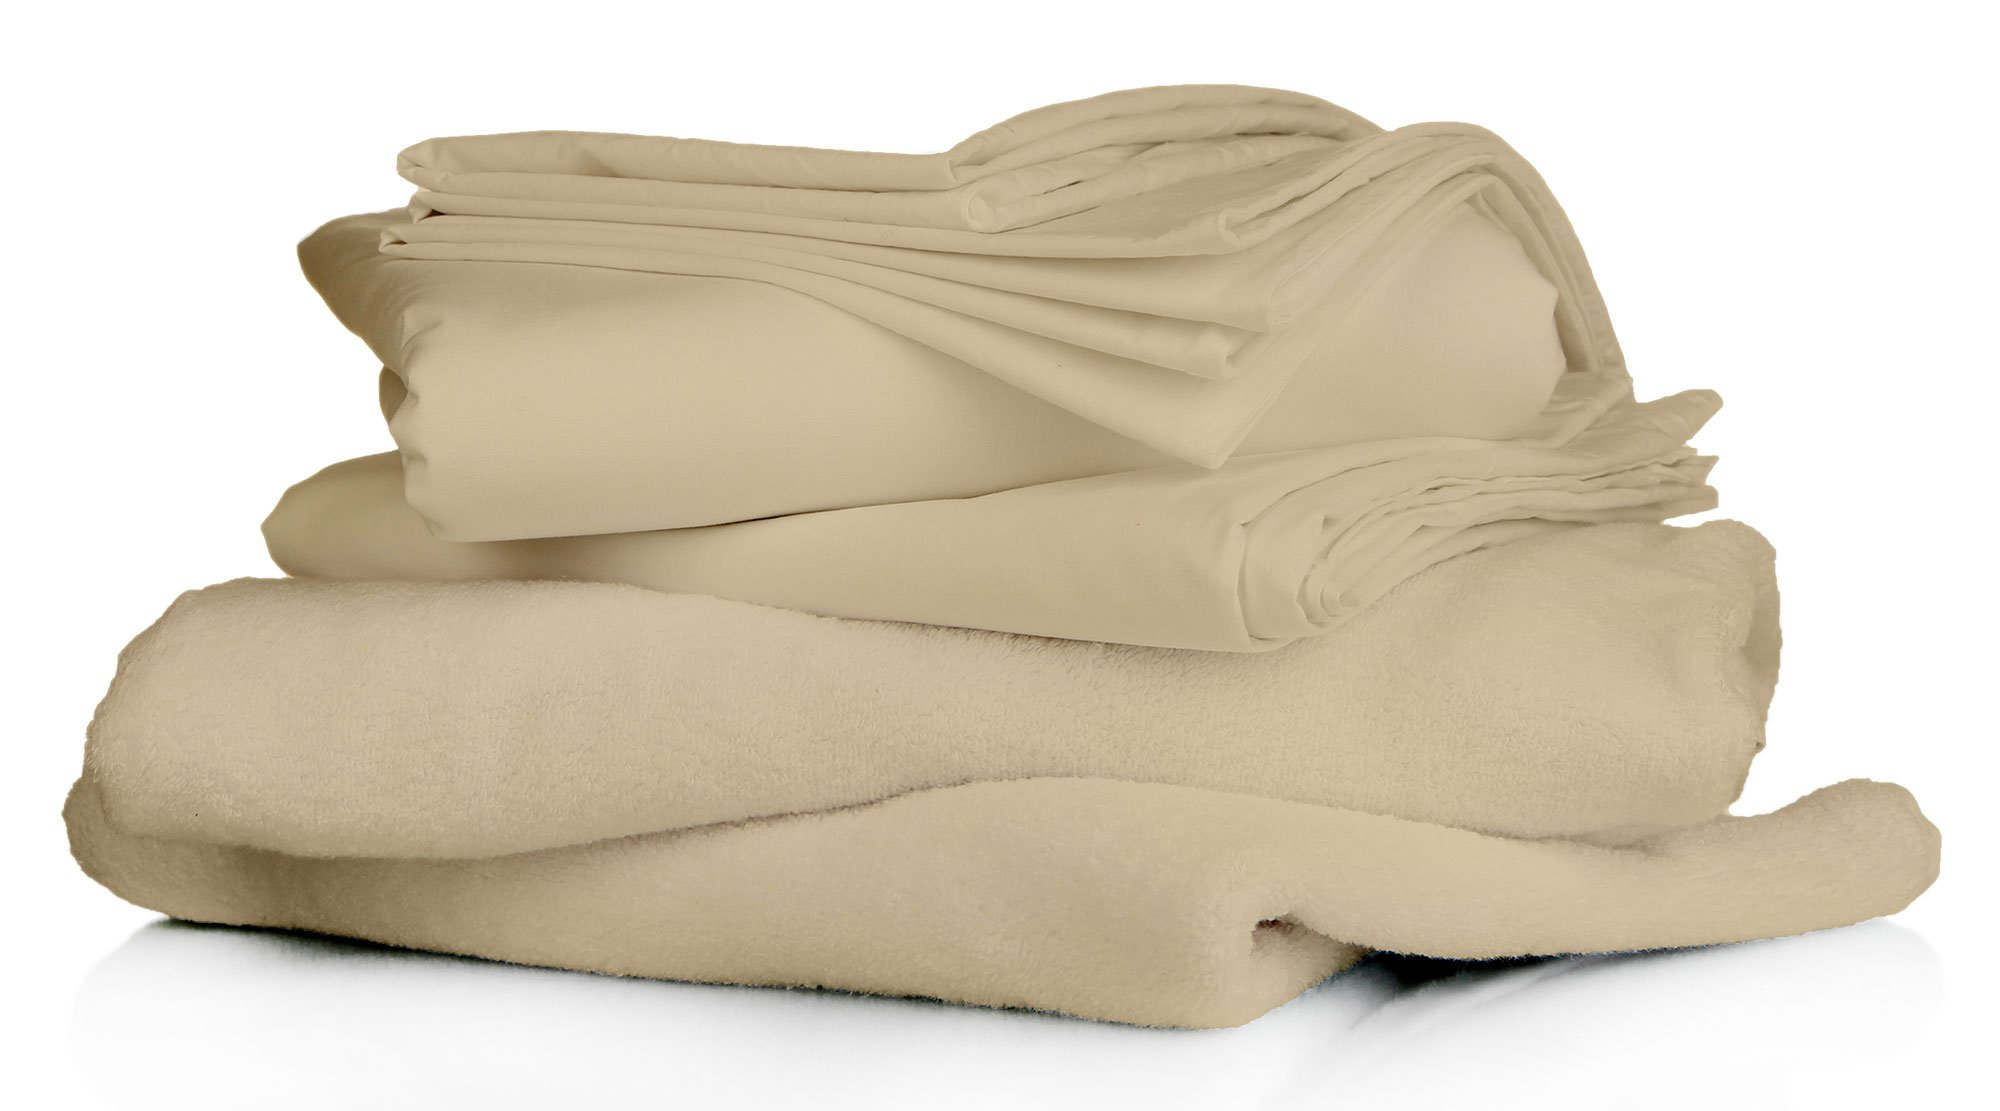 Rainbow Circo 100% Bamboo cotton 600 thread count fill luxurious Italian finish 4 piece premium sheet set comfort Sheet set with 24'' deep pocket made in India (Taupe, Cal-king) by Rainbow Circo (Image #3)